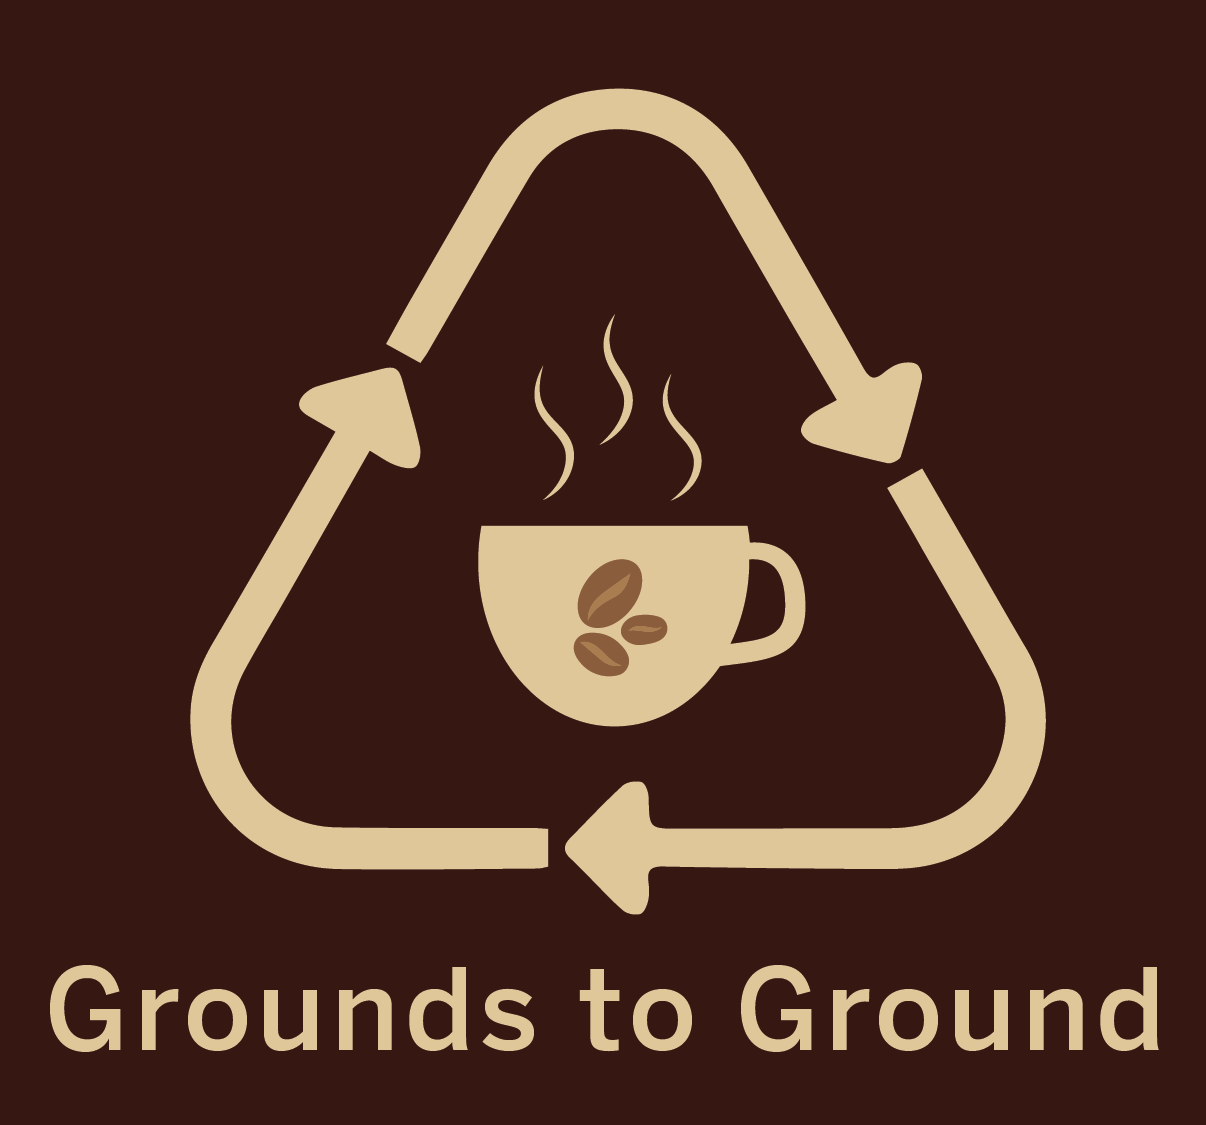 GroundstoGround-01.png